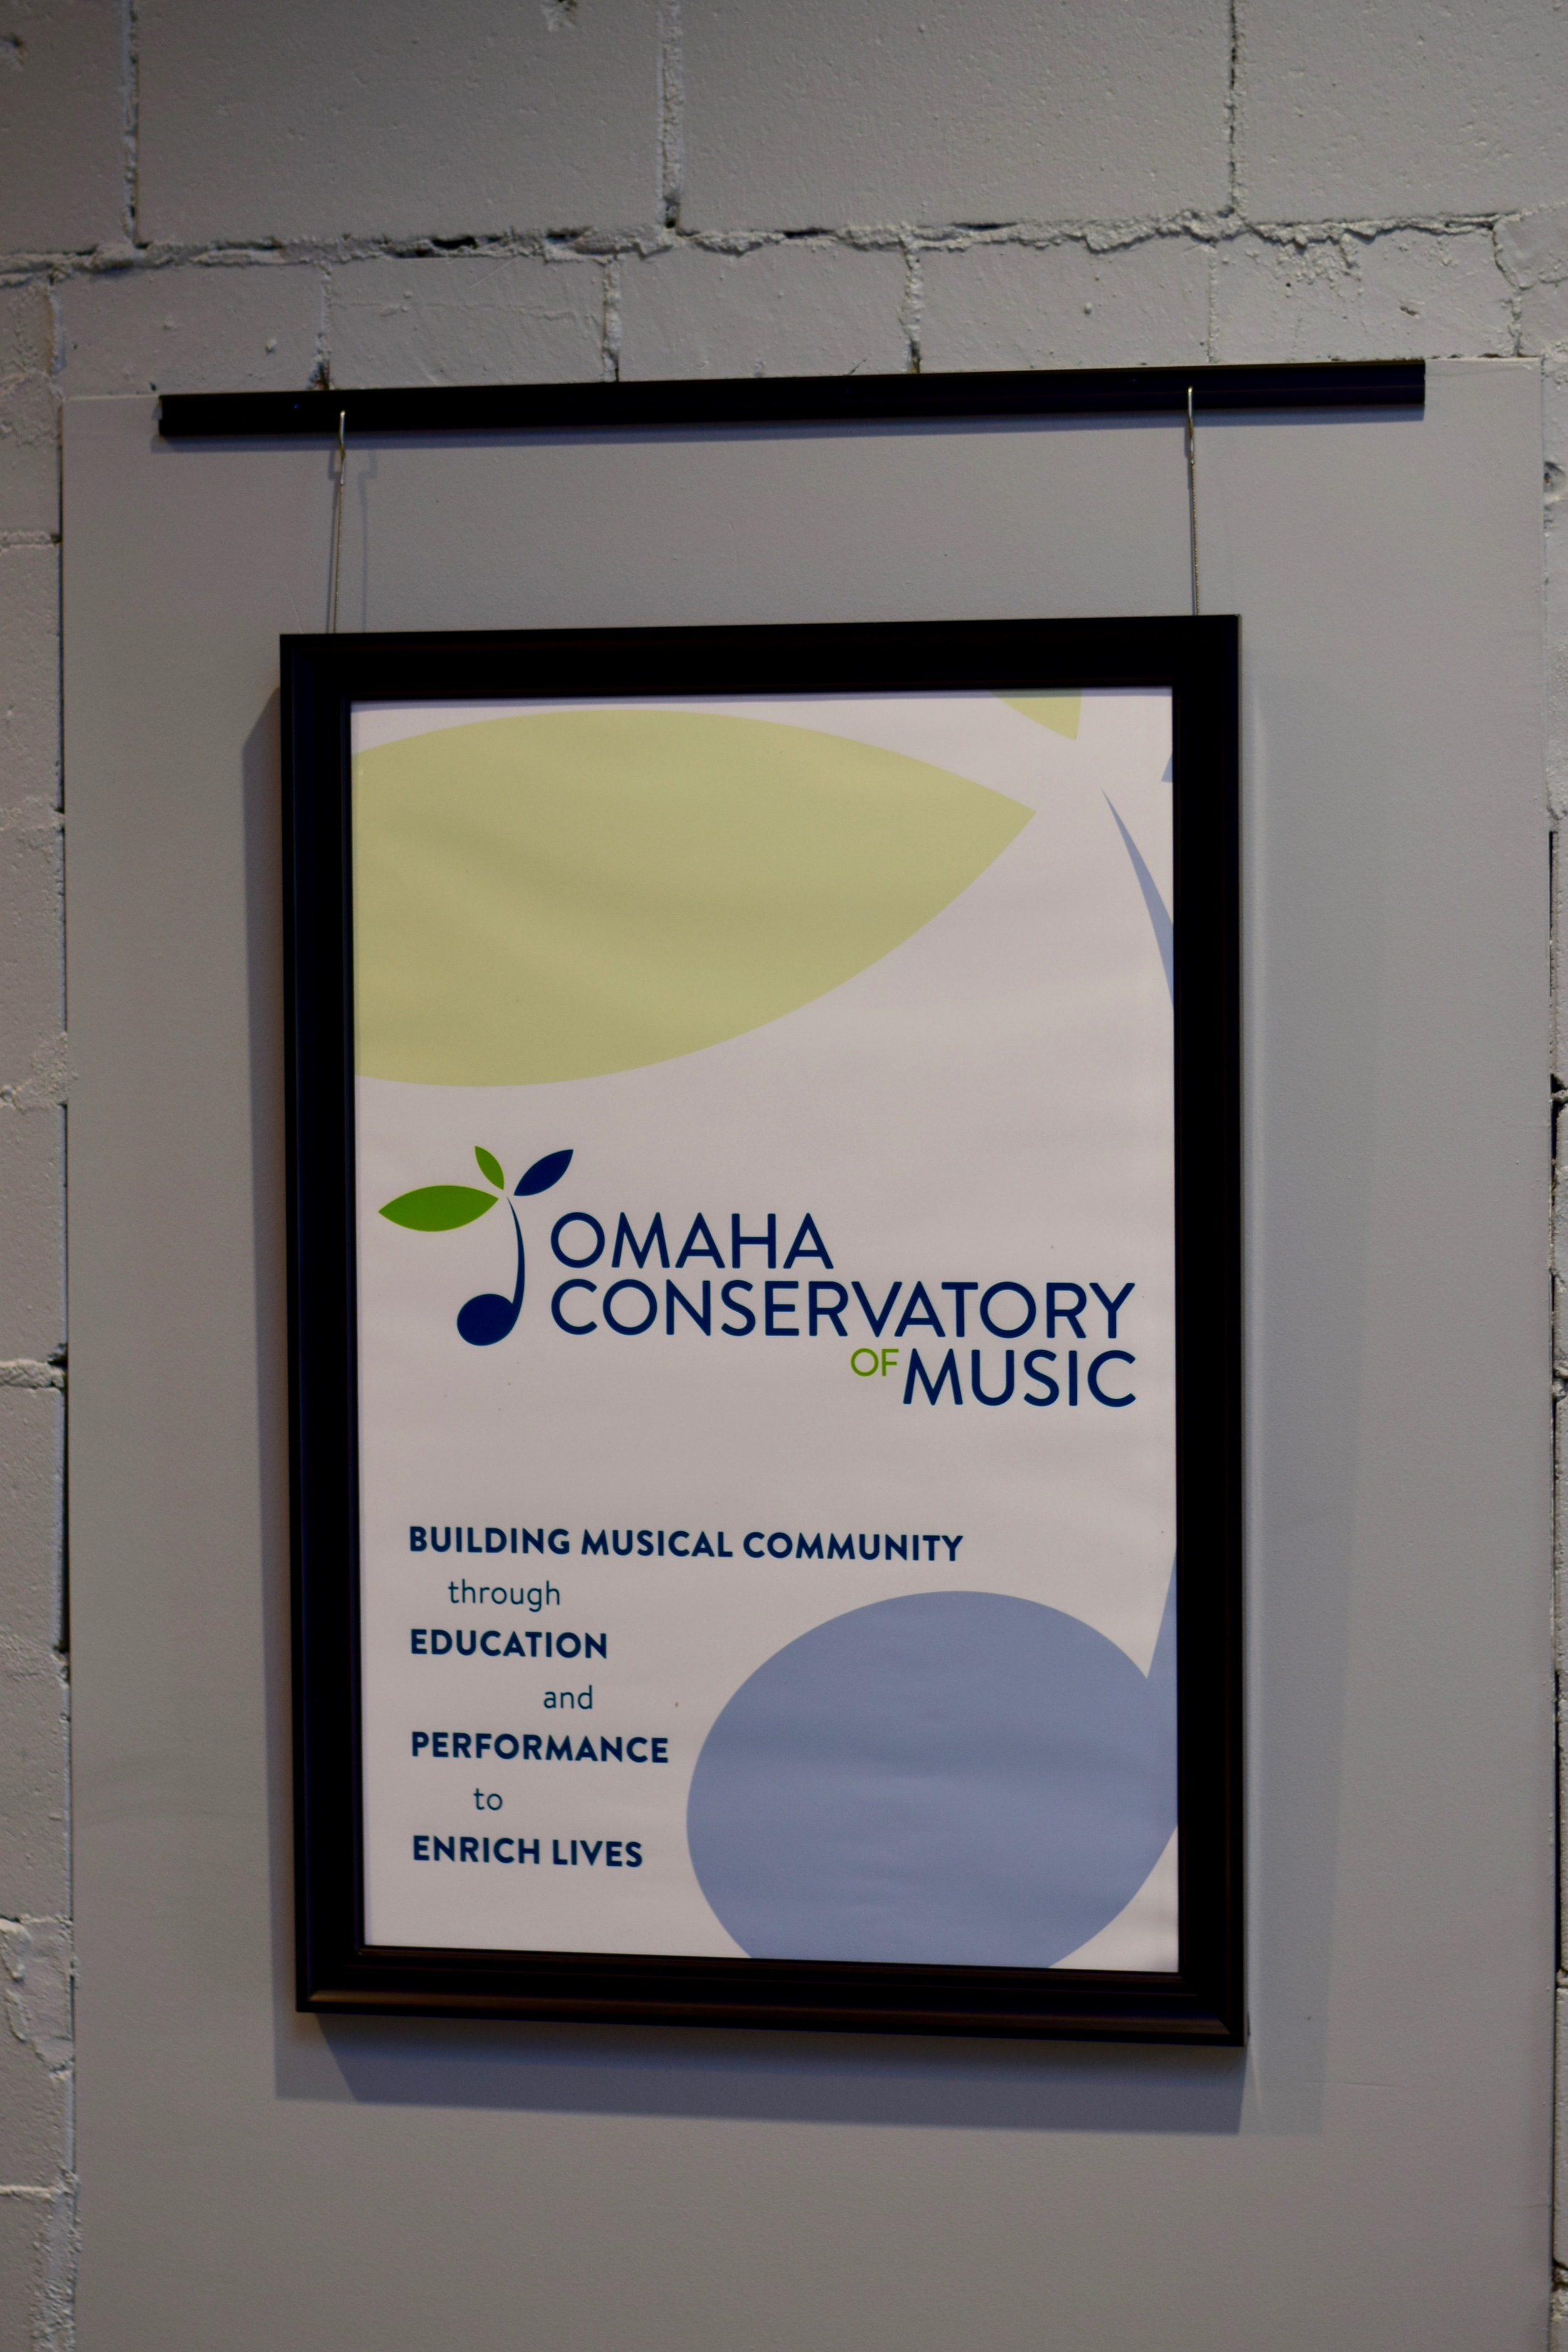 Omaha Conservatory of Music hallway poster